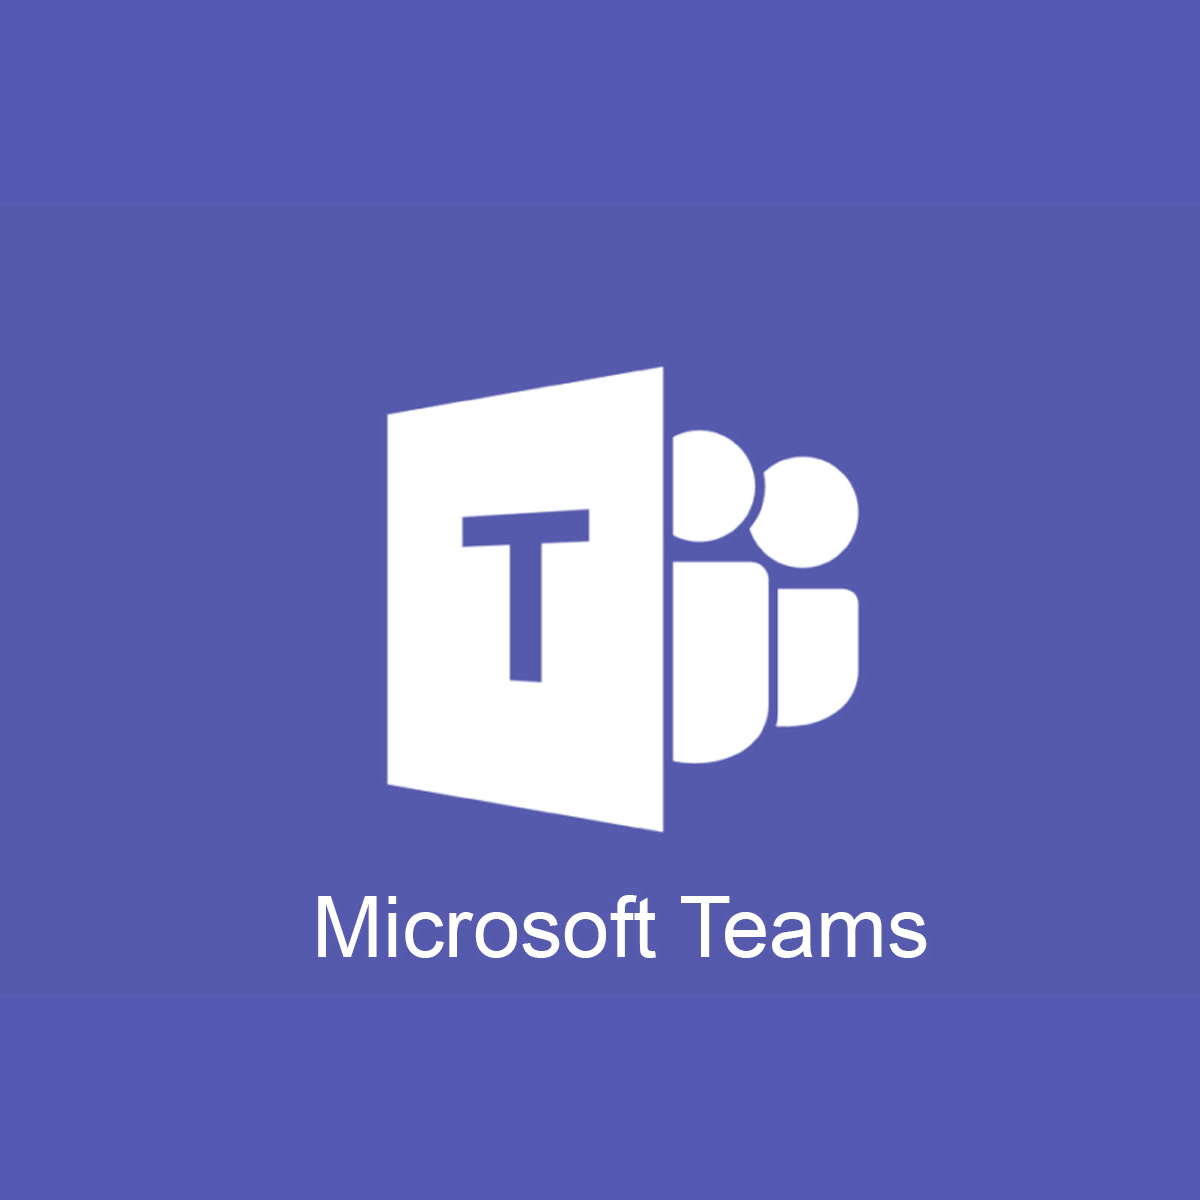 With the recent updates to Microsoft Teams, including the